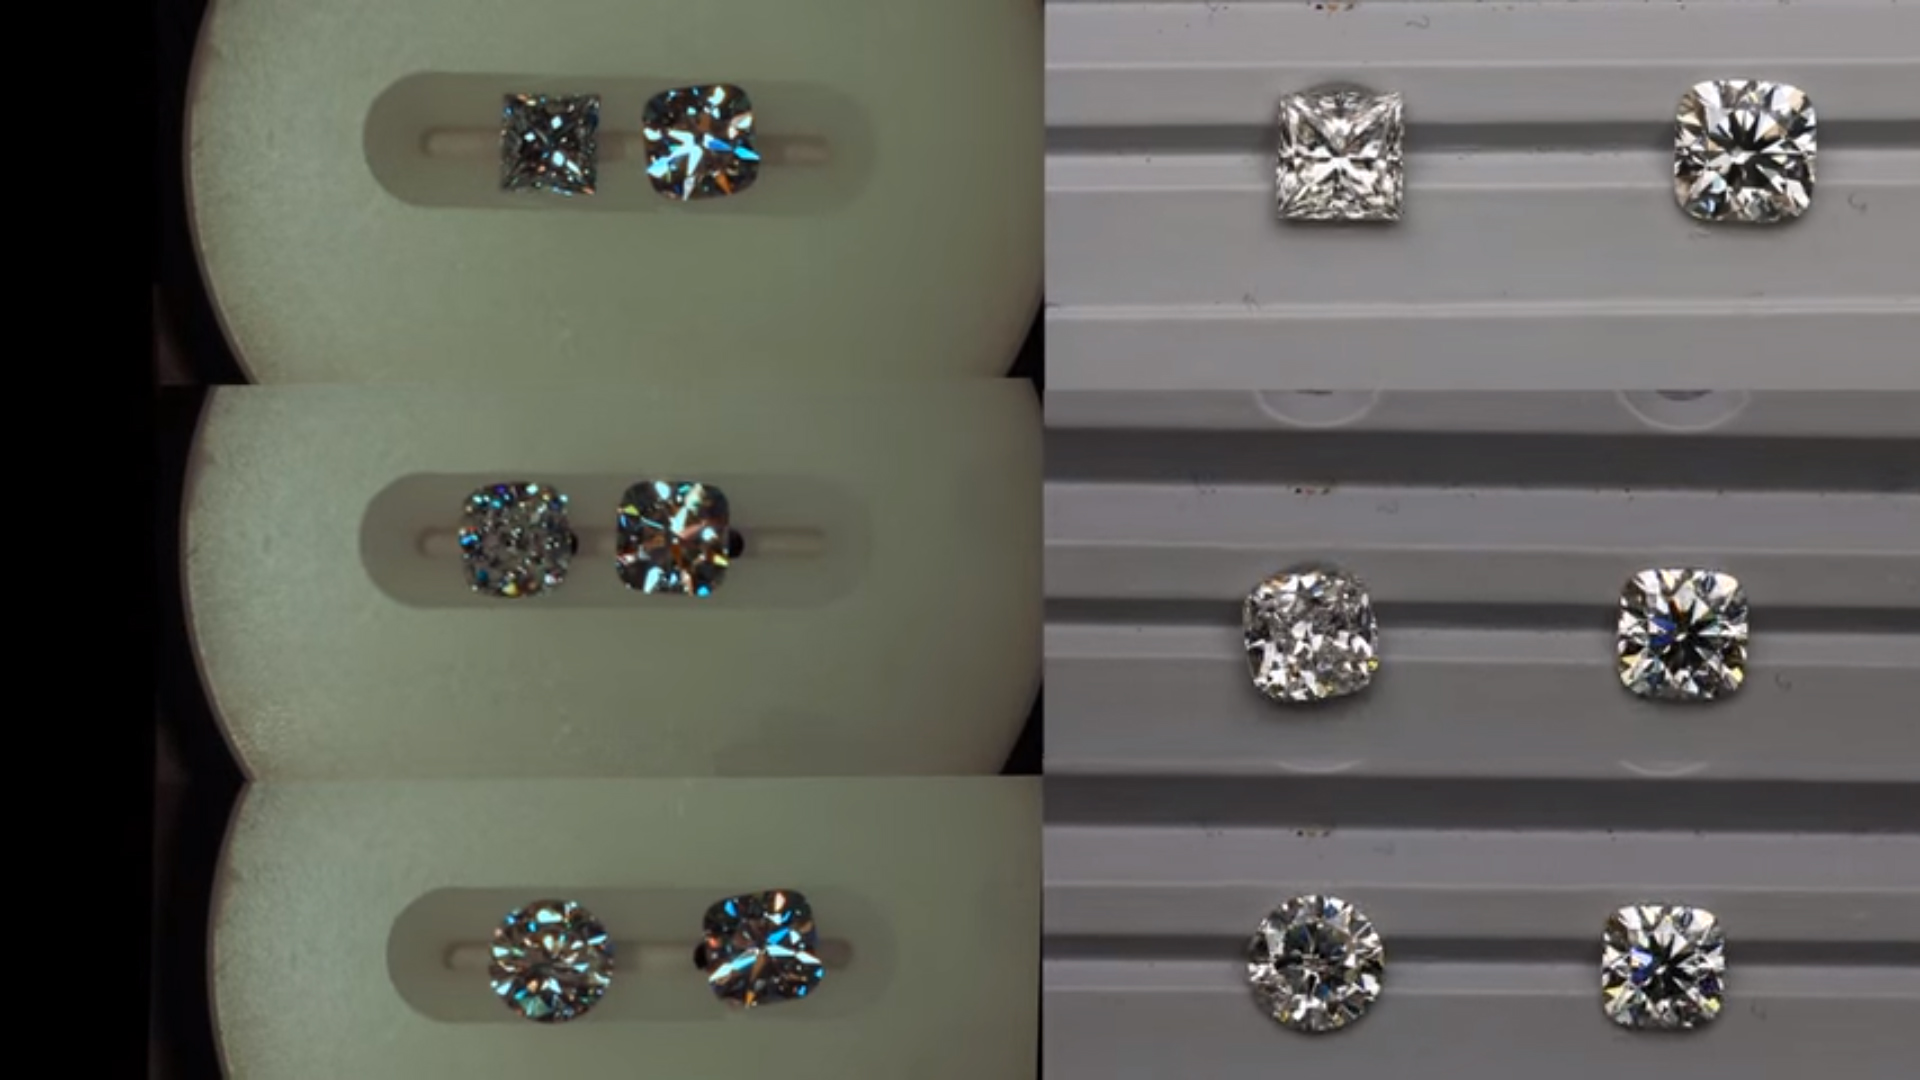 JannPaul: Comparing Signature Cushion Brellia with Common Cut Diamonds